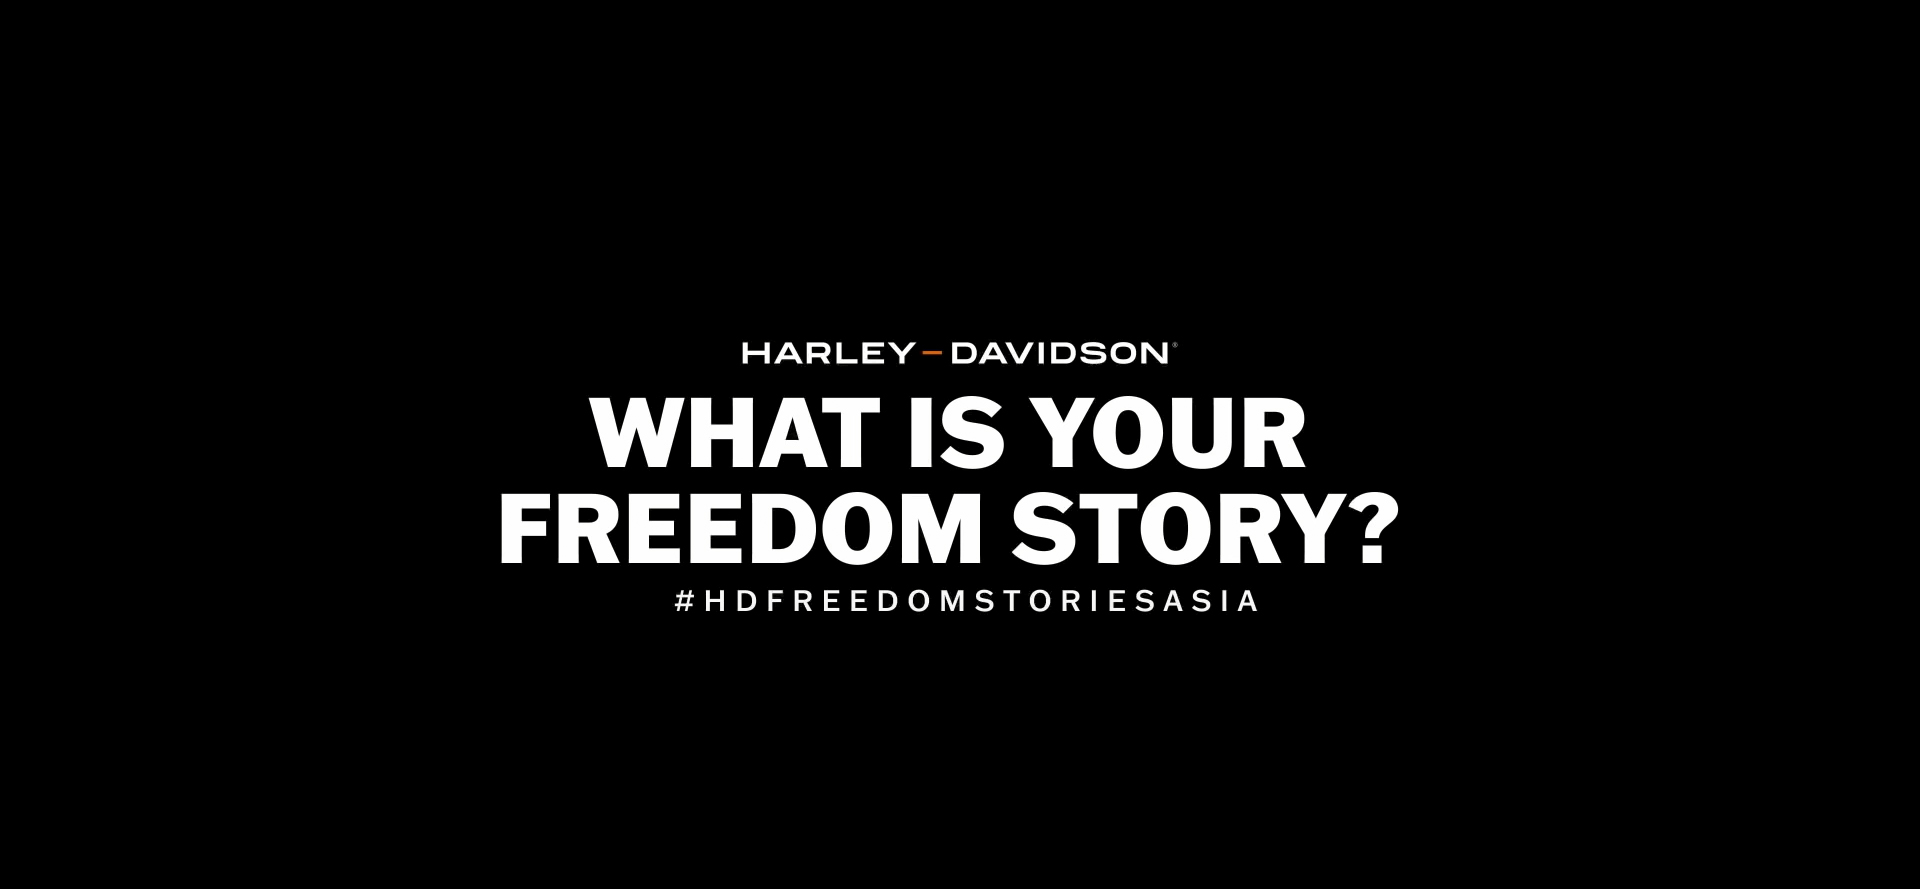 Harley-Davidson® Invites Riders to share their Freedom Stories